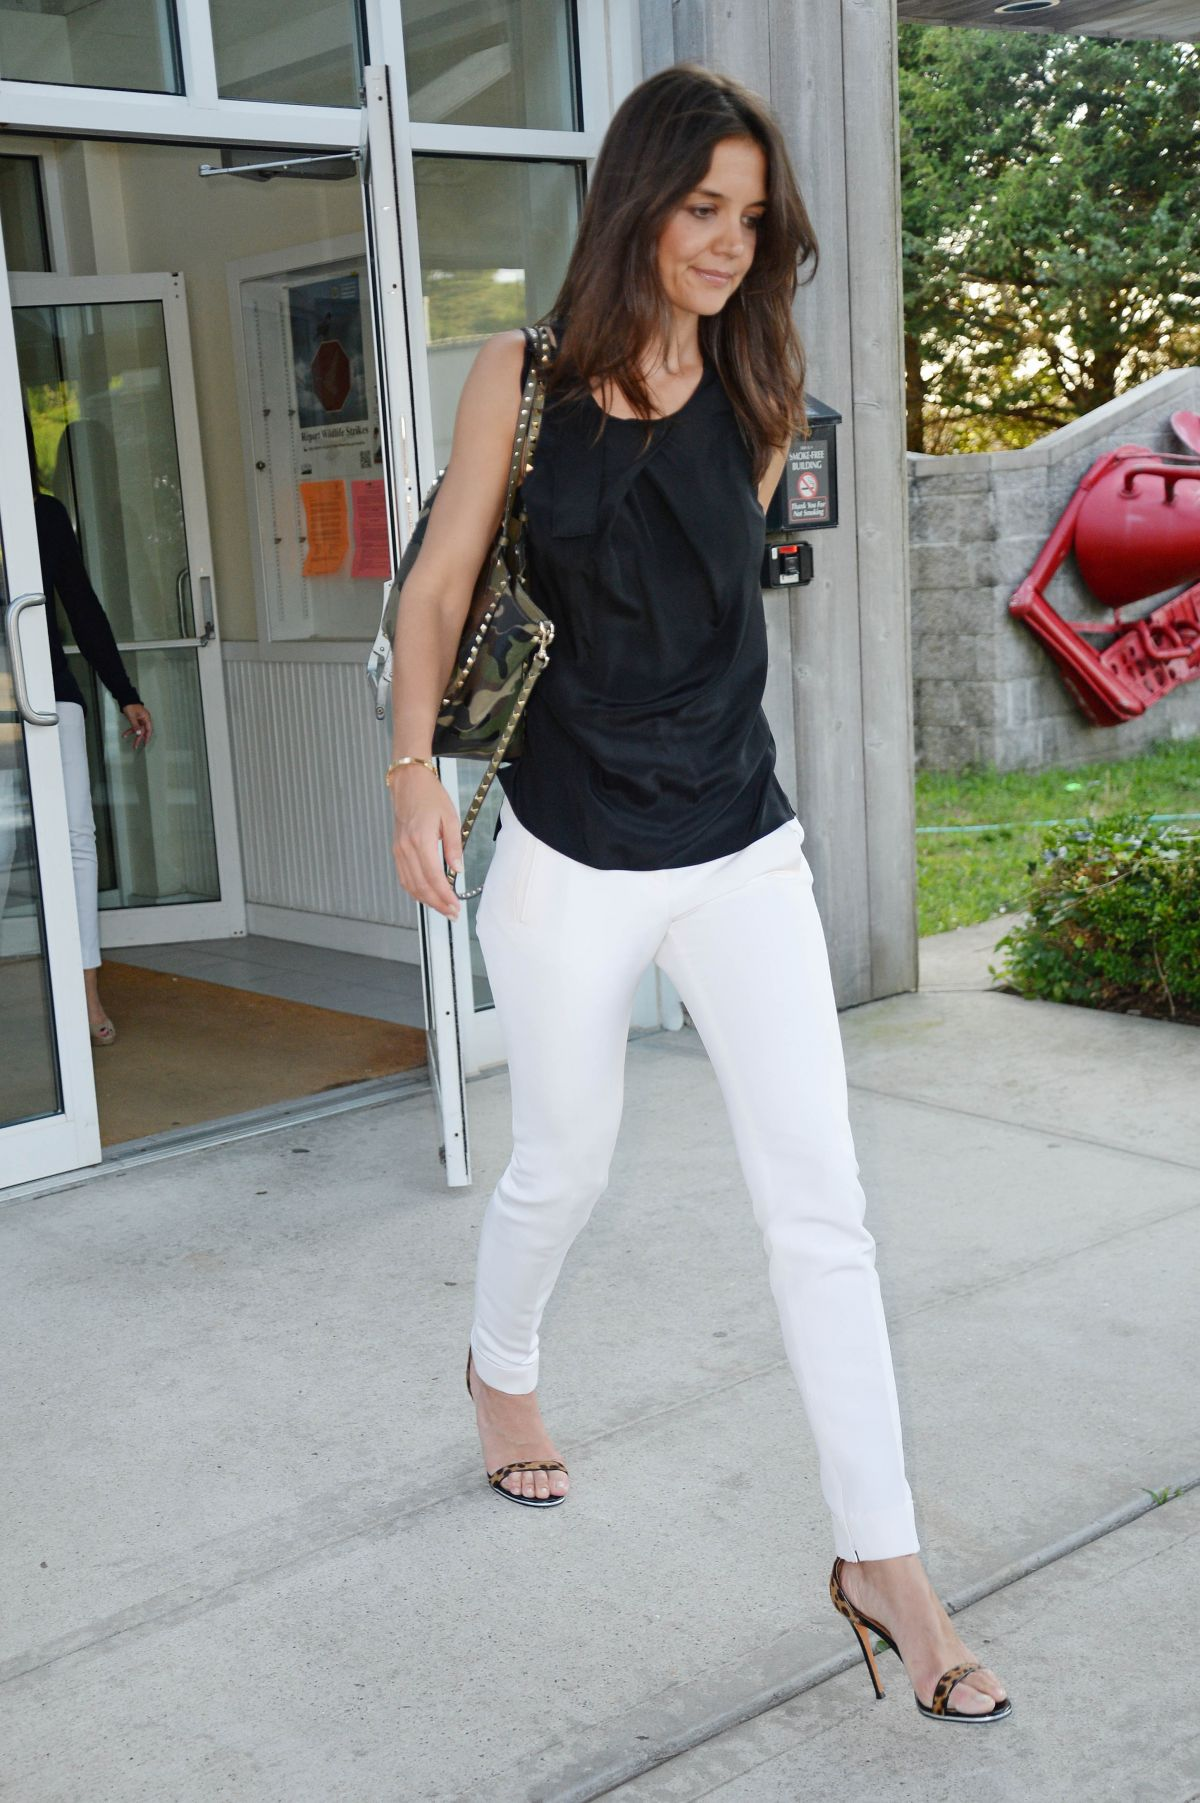 KATIE HOLMES at East Hampton Airport in New York